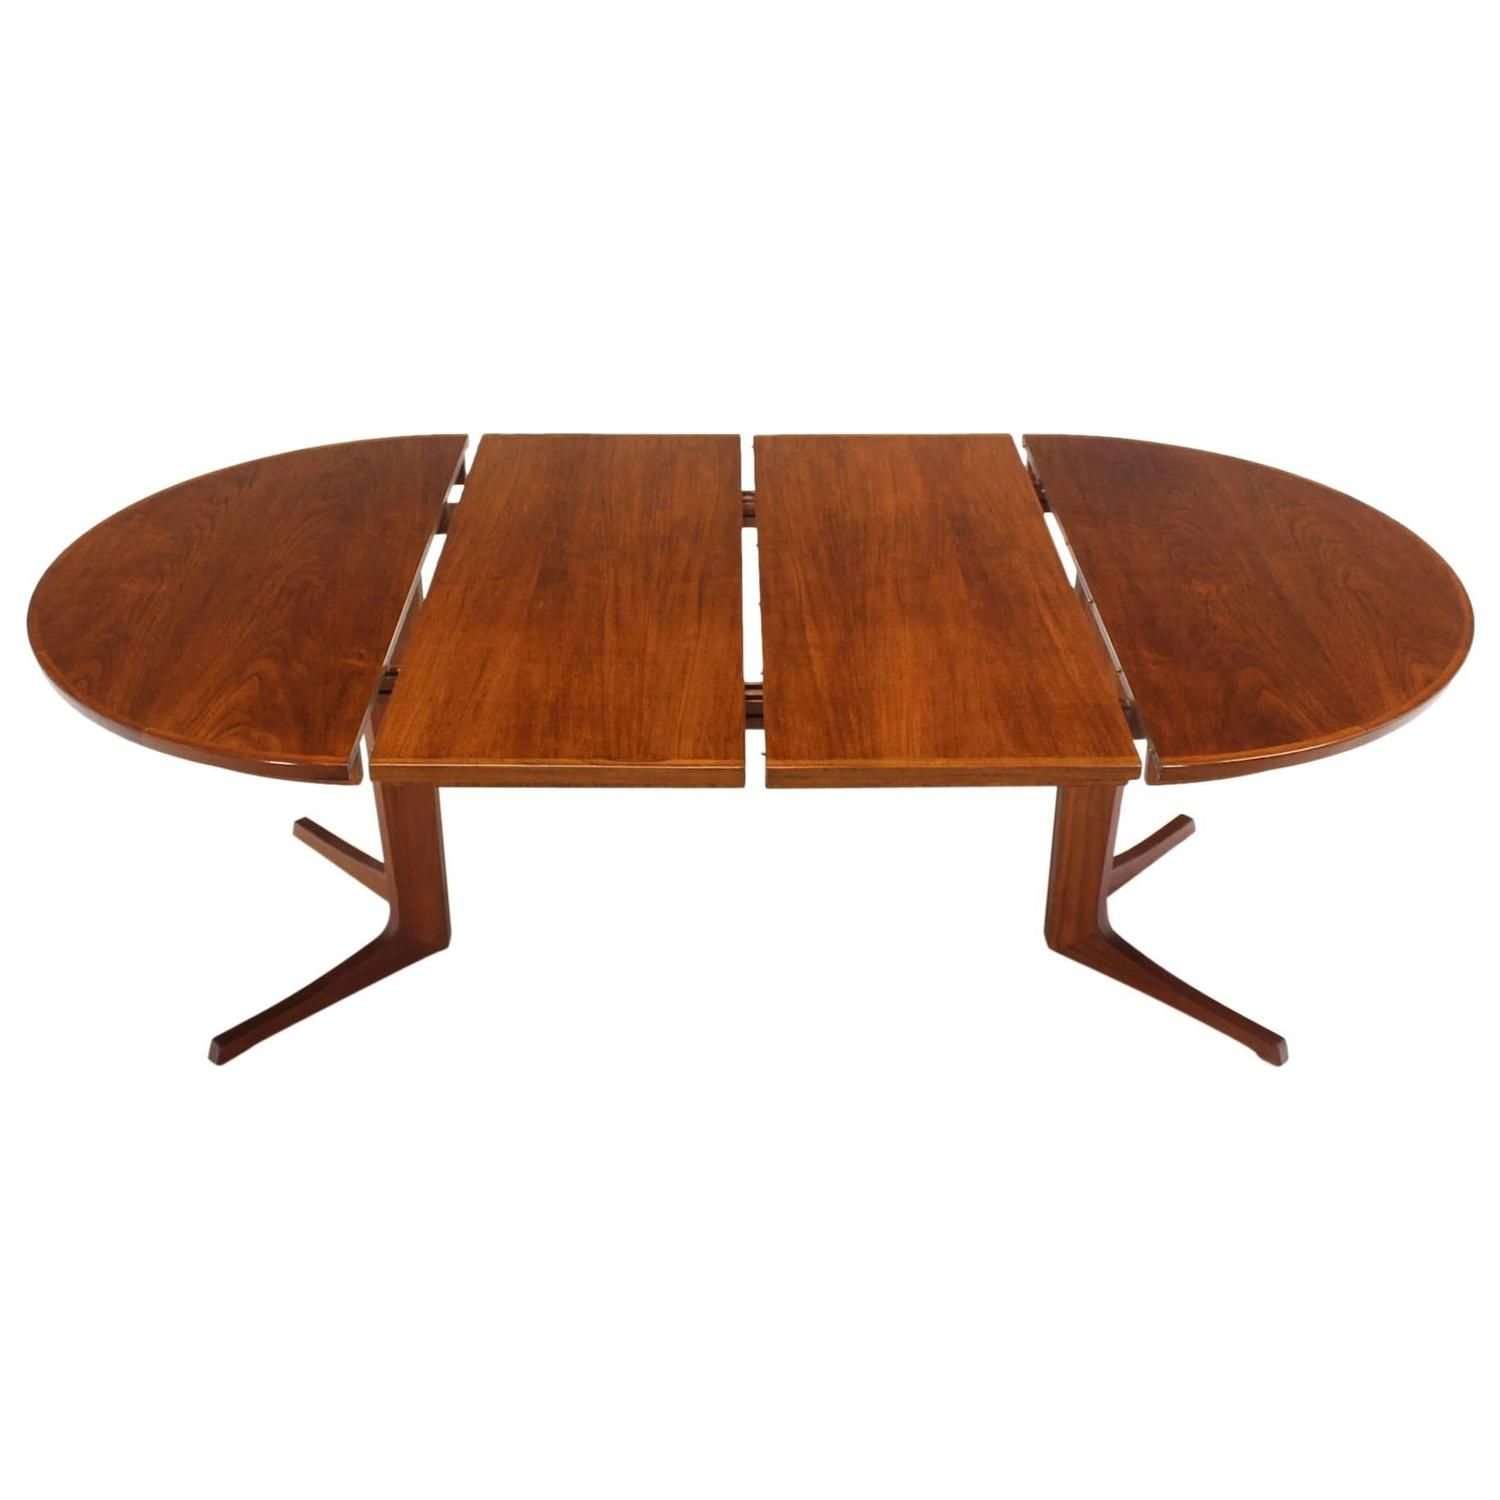 Pin By Susan Medici On Furniture Dining Table With Leaf